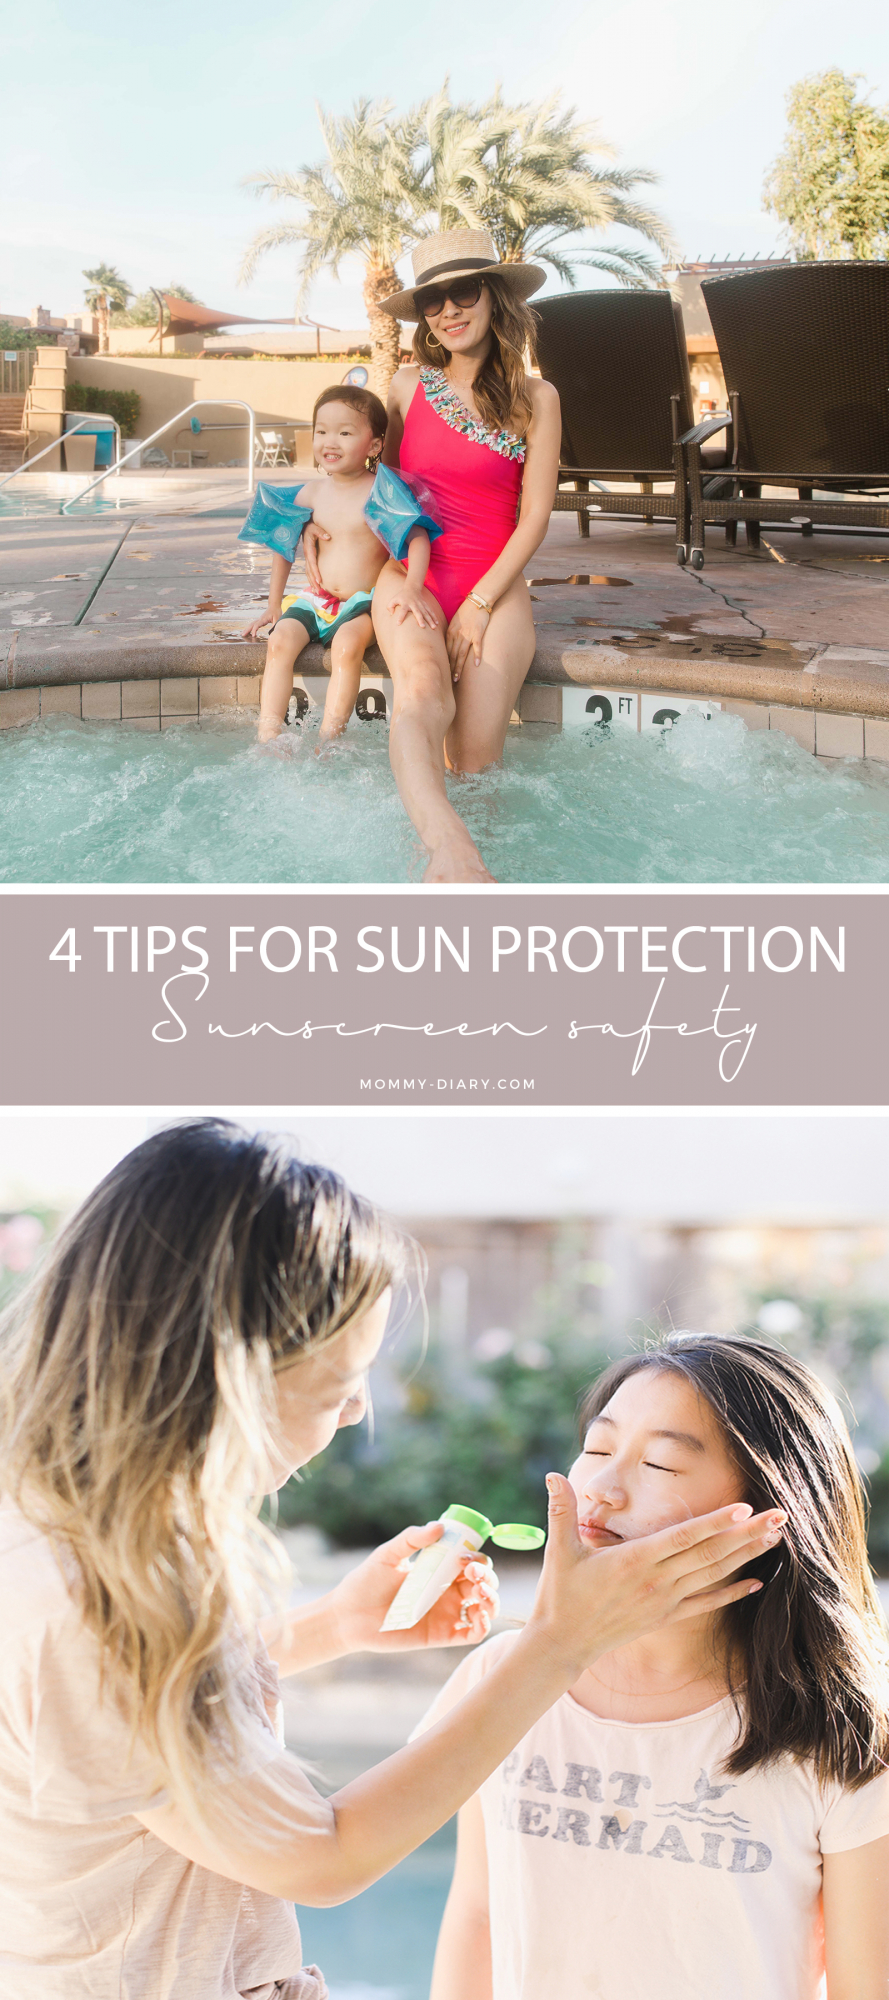 sunscreen-safety-pinterest